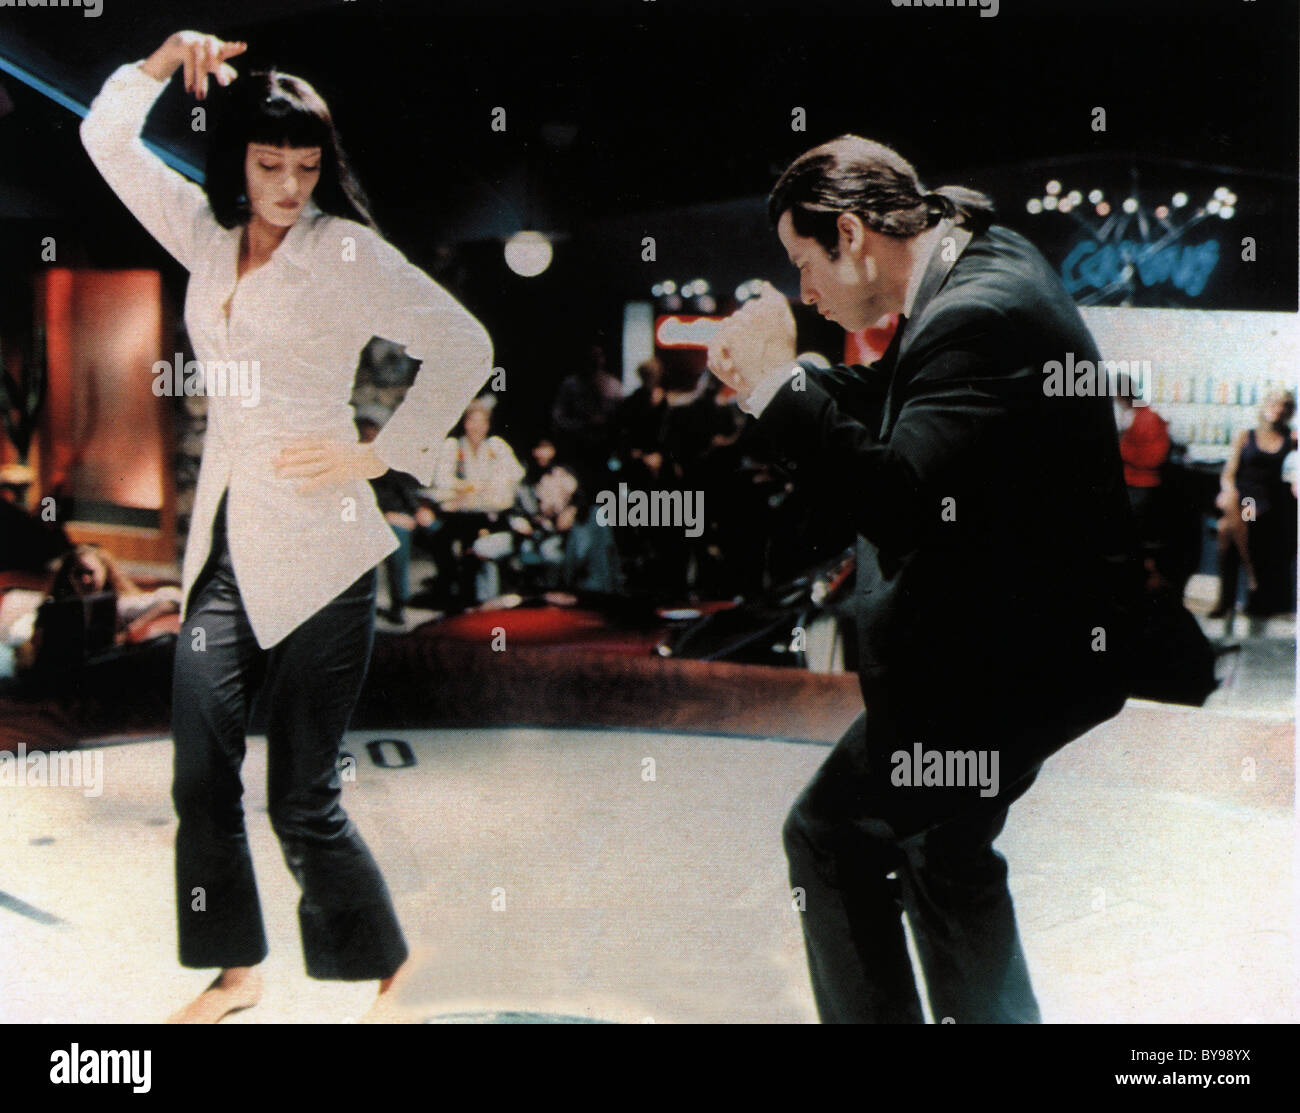 John Travolta Dancing High Resolution Stock Photography And Images Alamy